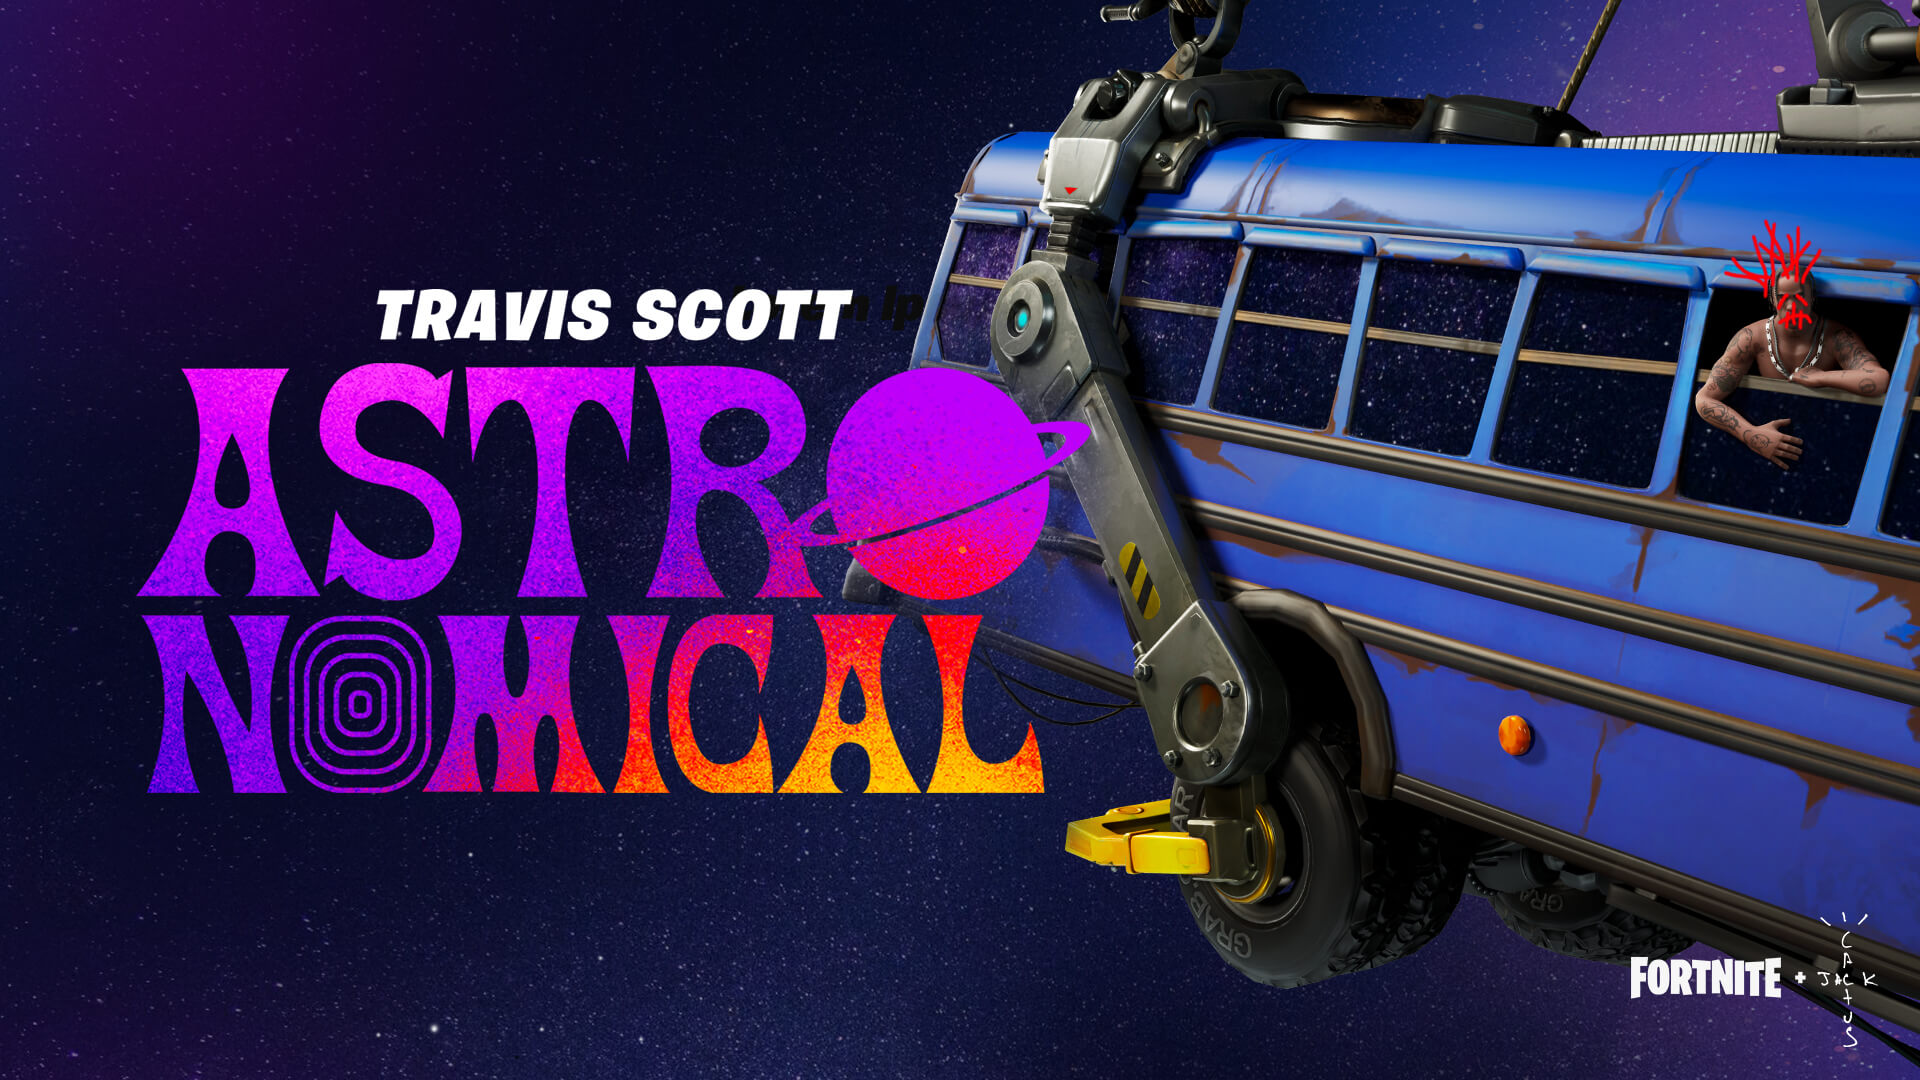 Announcing the Fortnite and Travis Scott Event: Astronomical